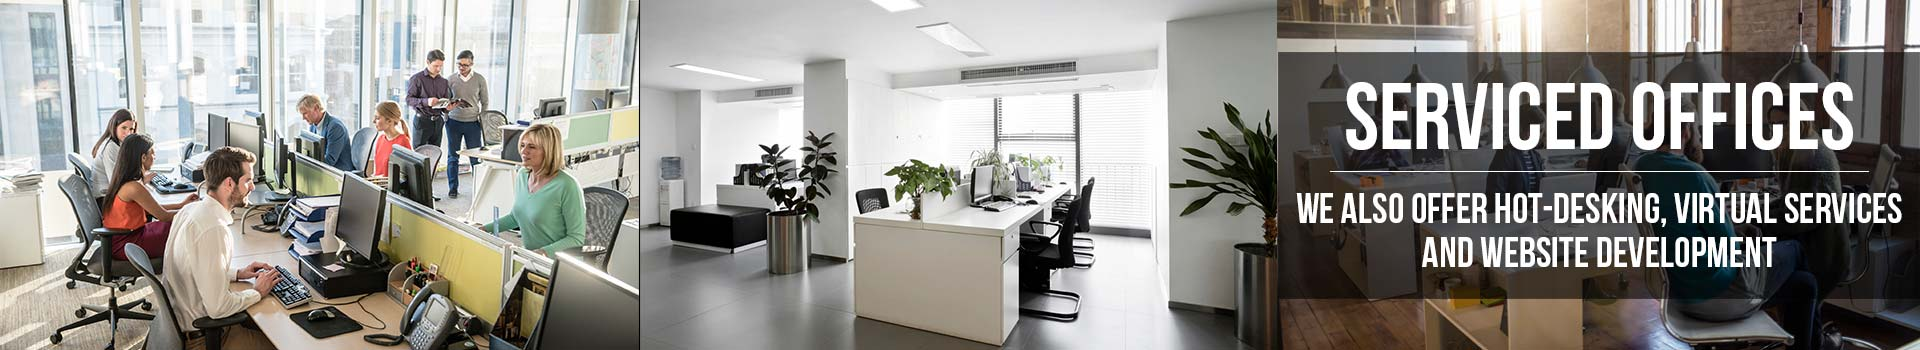 Malik House Business Centres | Serviced Offices and Virtual Services